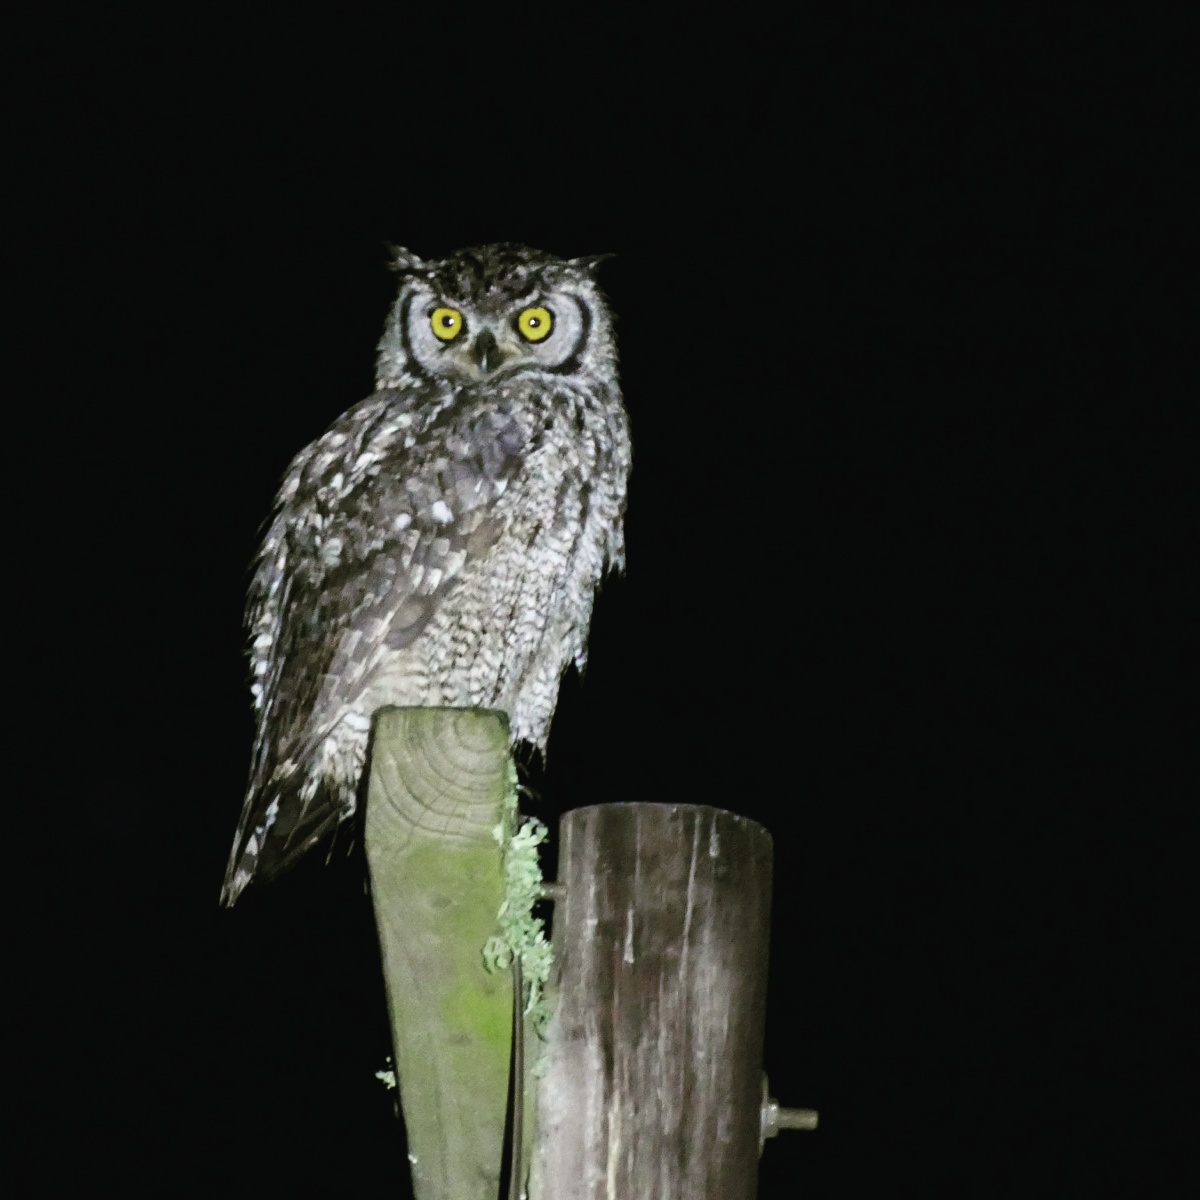 Noah's view of a Spotted Eagle-Owl before dawn. Noah Strycker